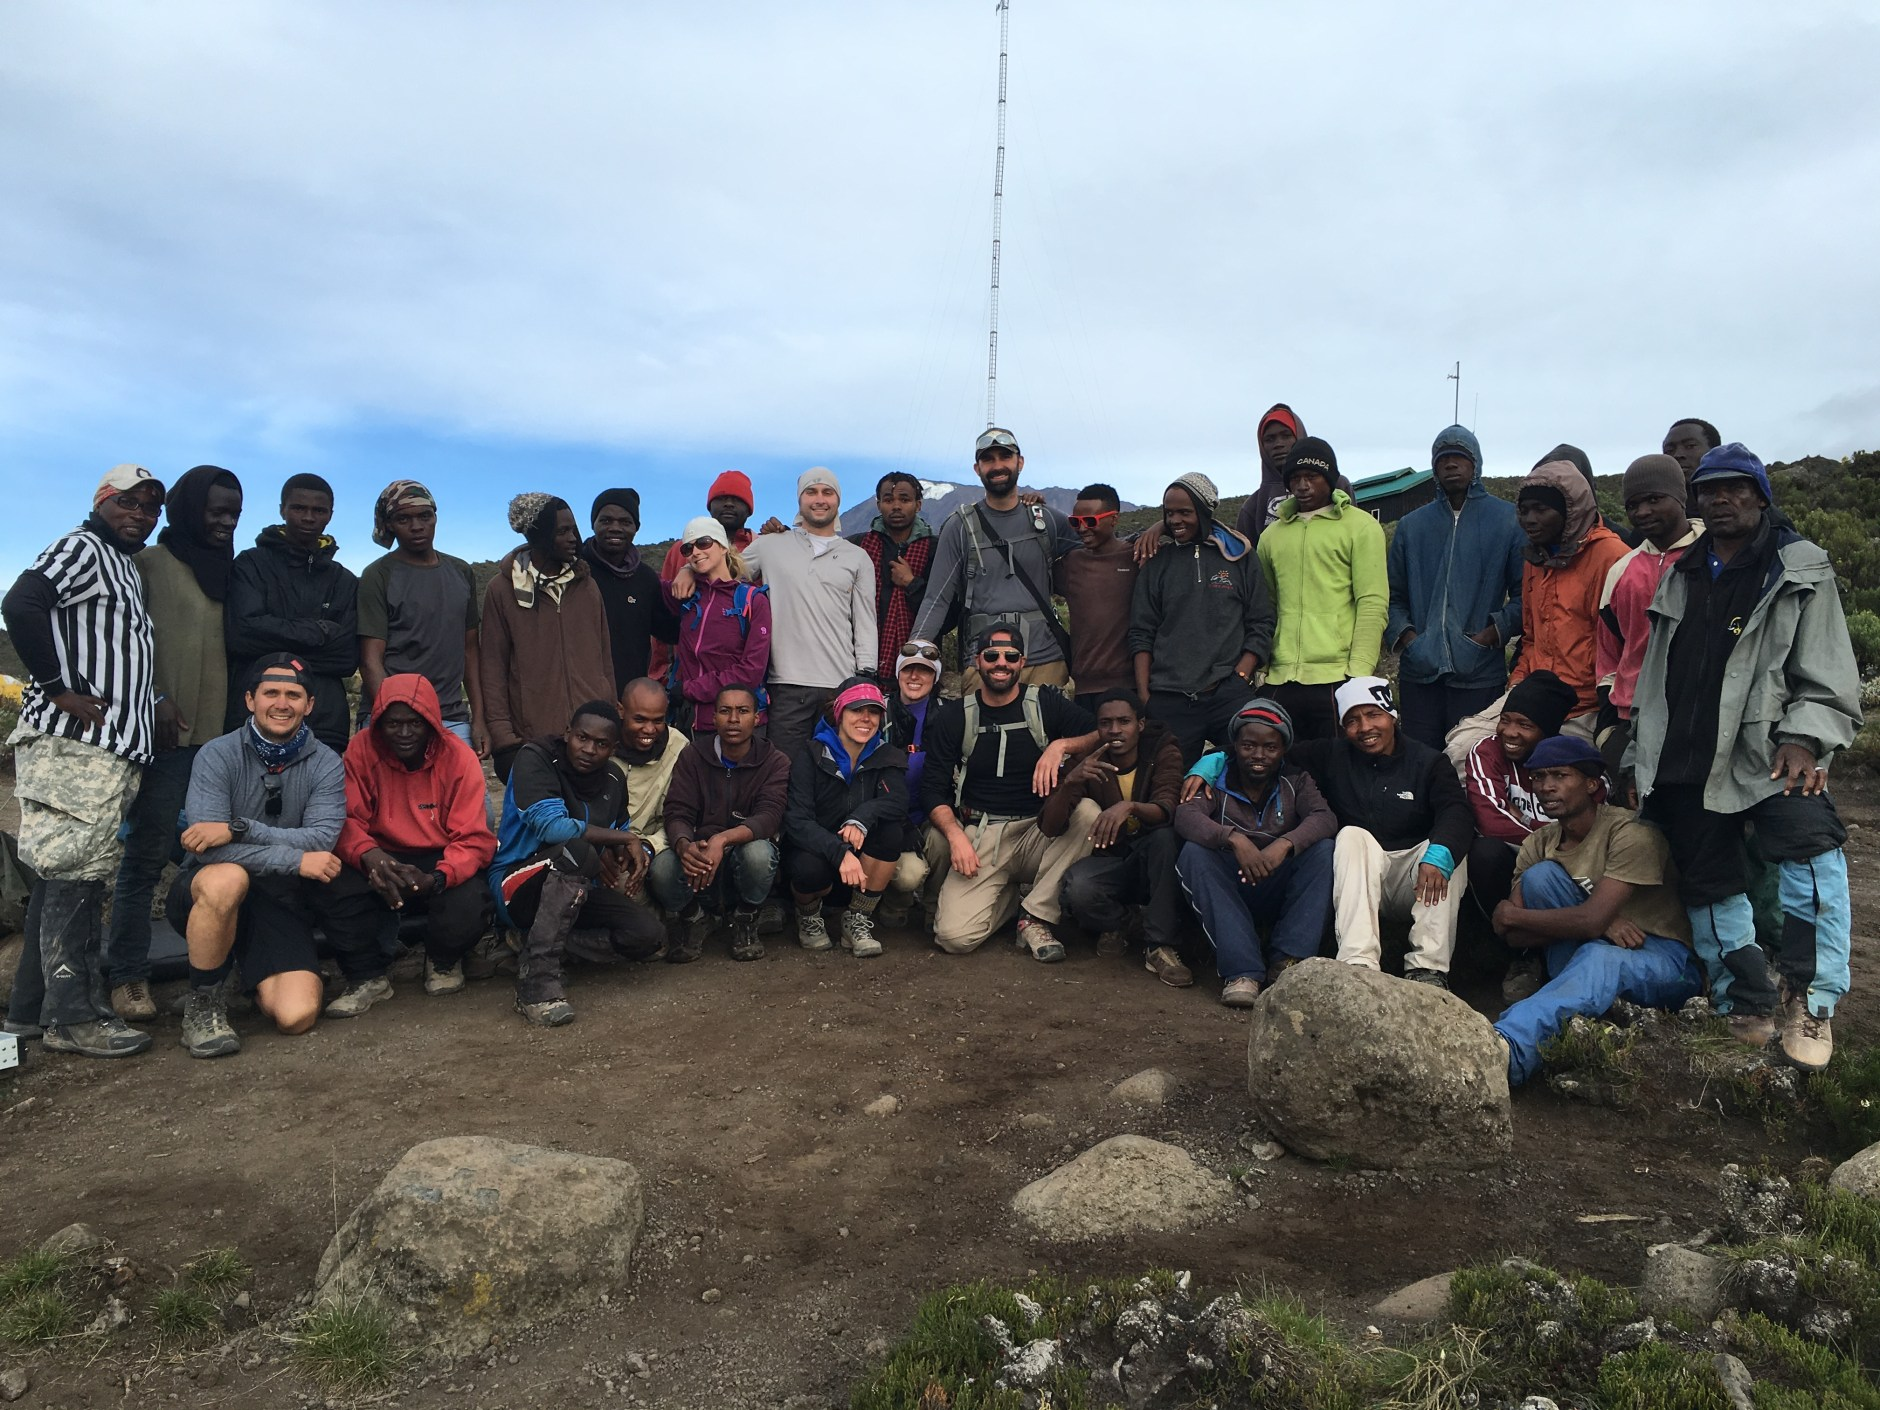 Our whole crew (7 of us, 26 porters and 3 guides)